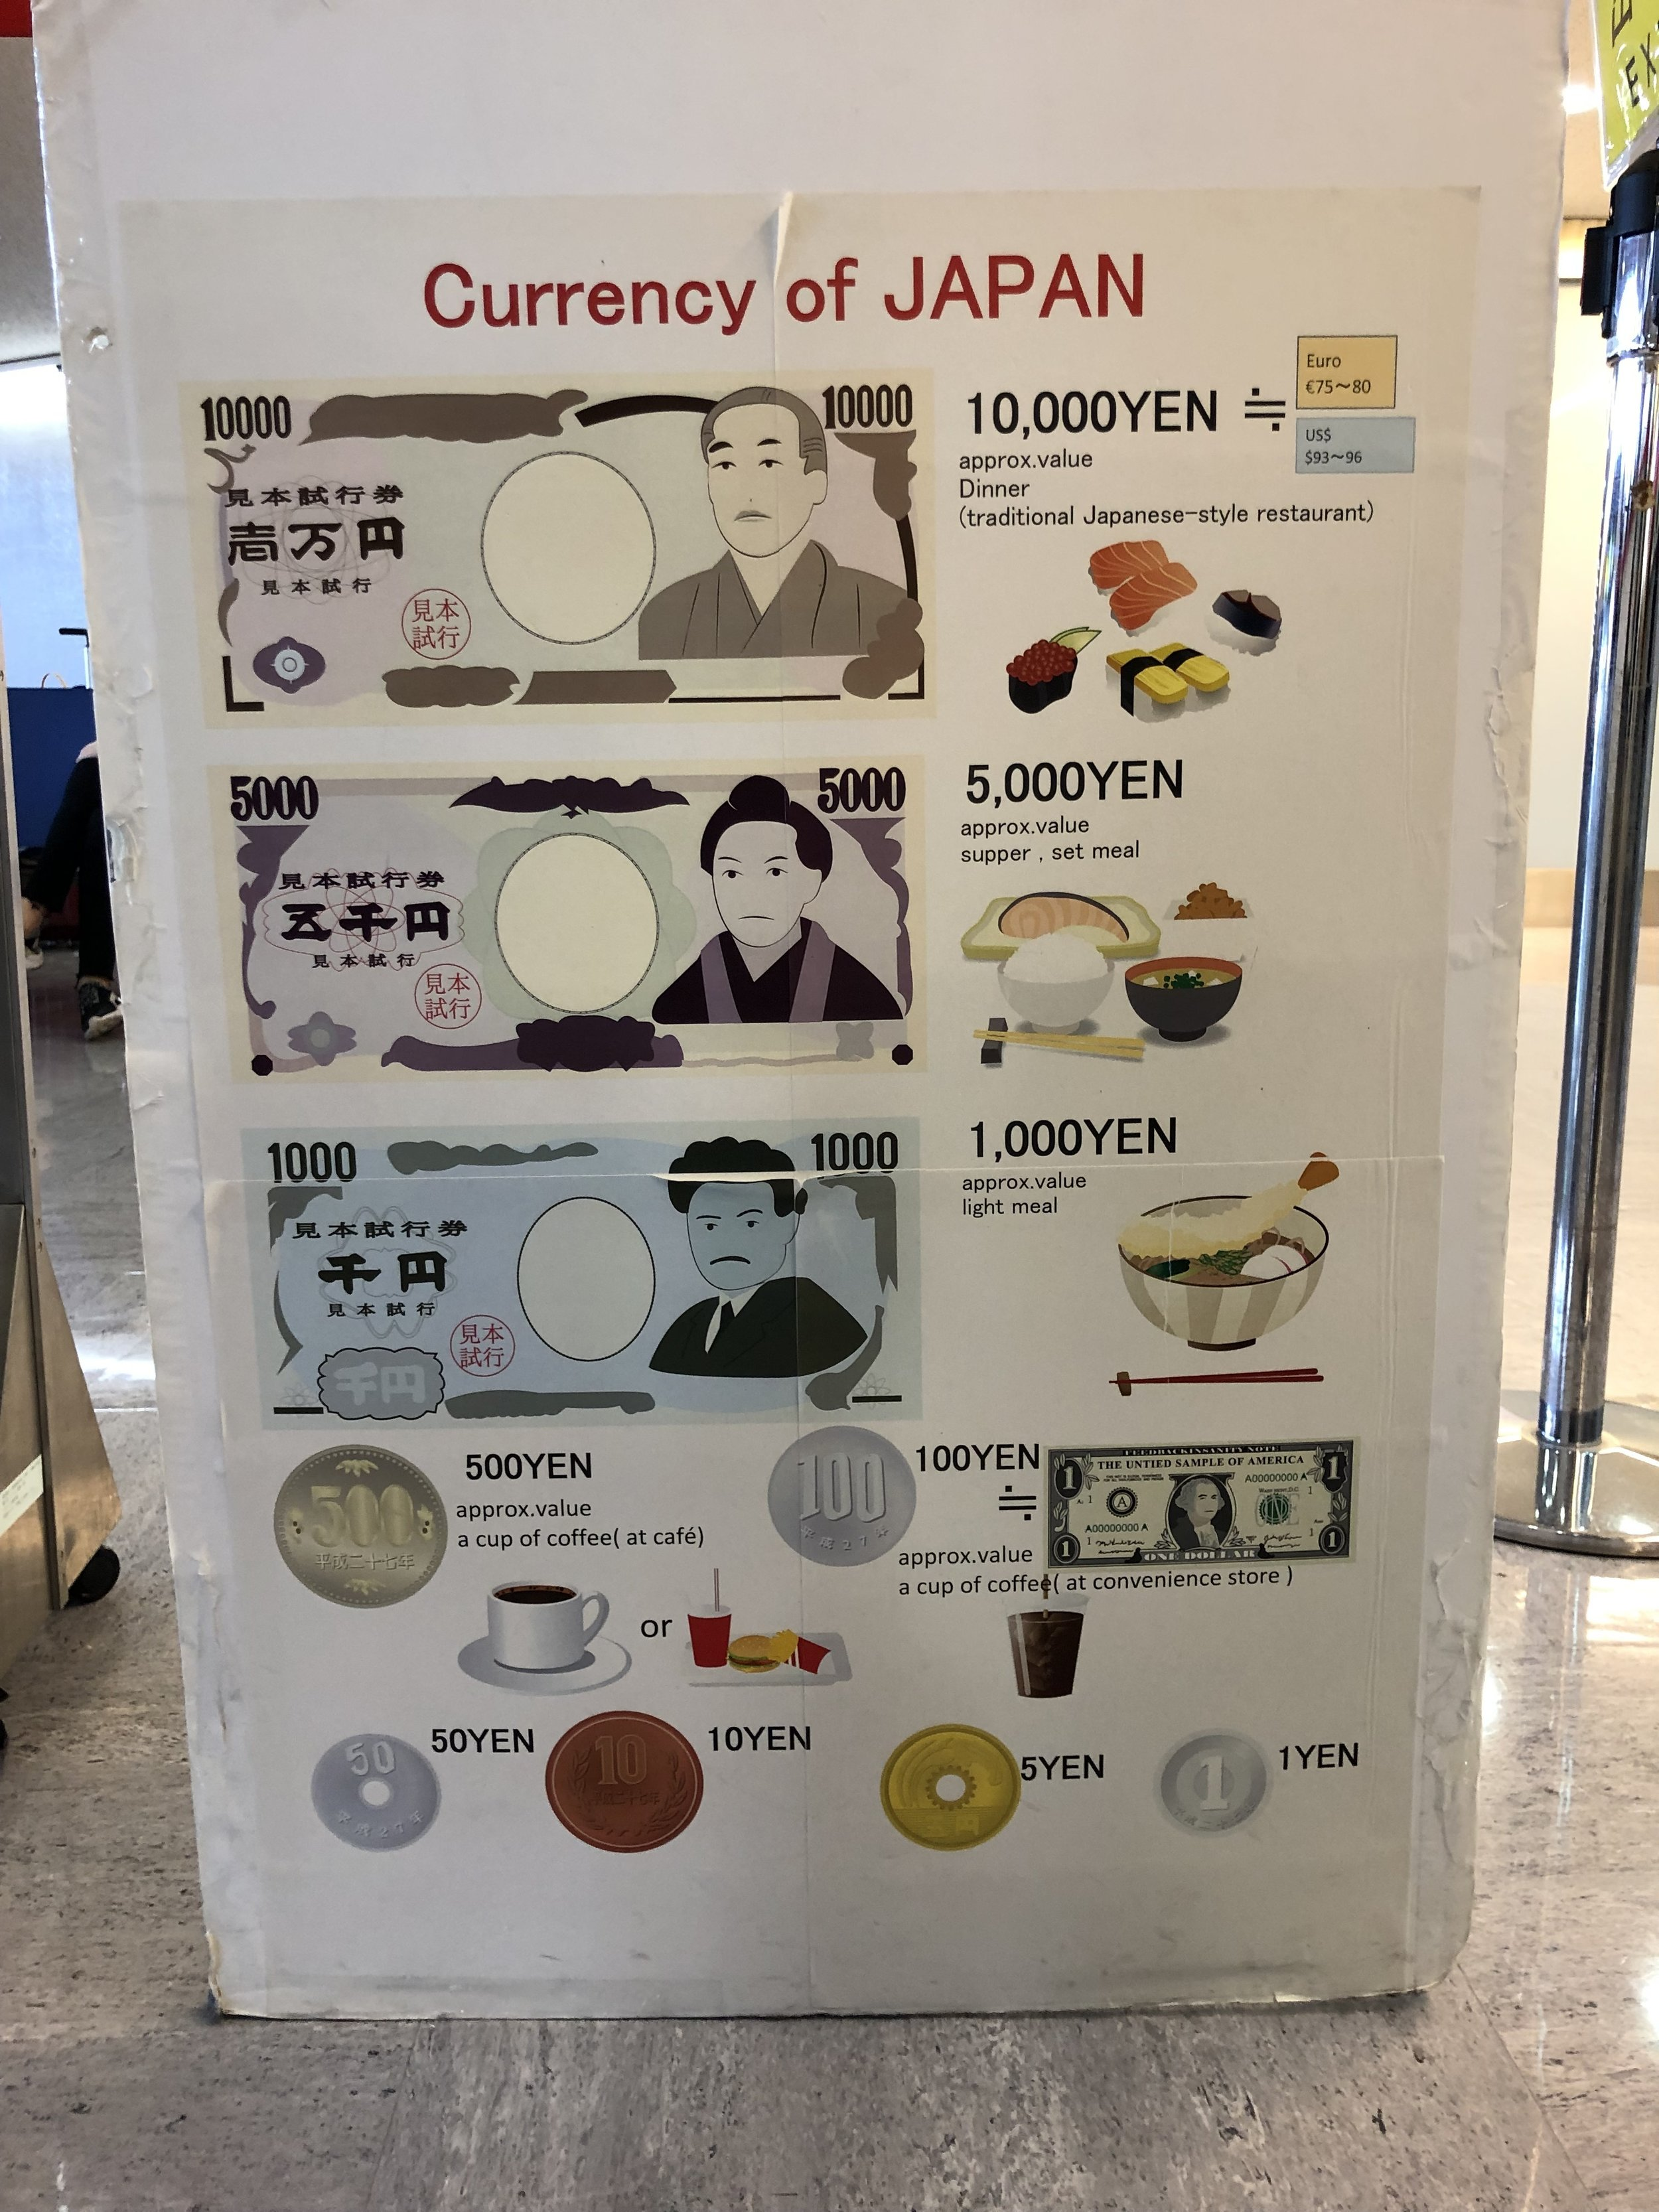 For those unfamiliar with Japanese currency, here's a cool breakdown picture I saw!